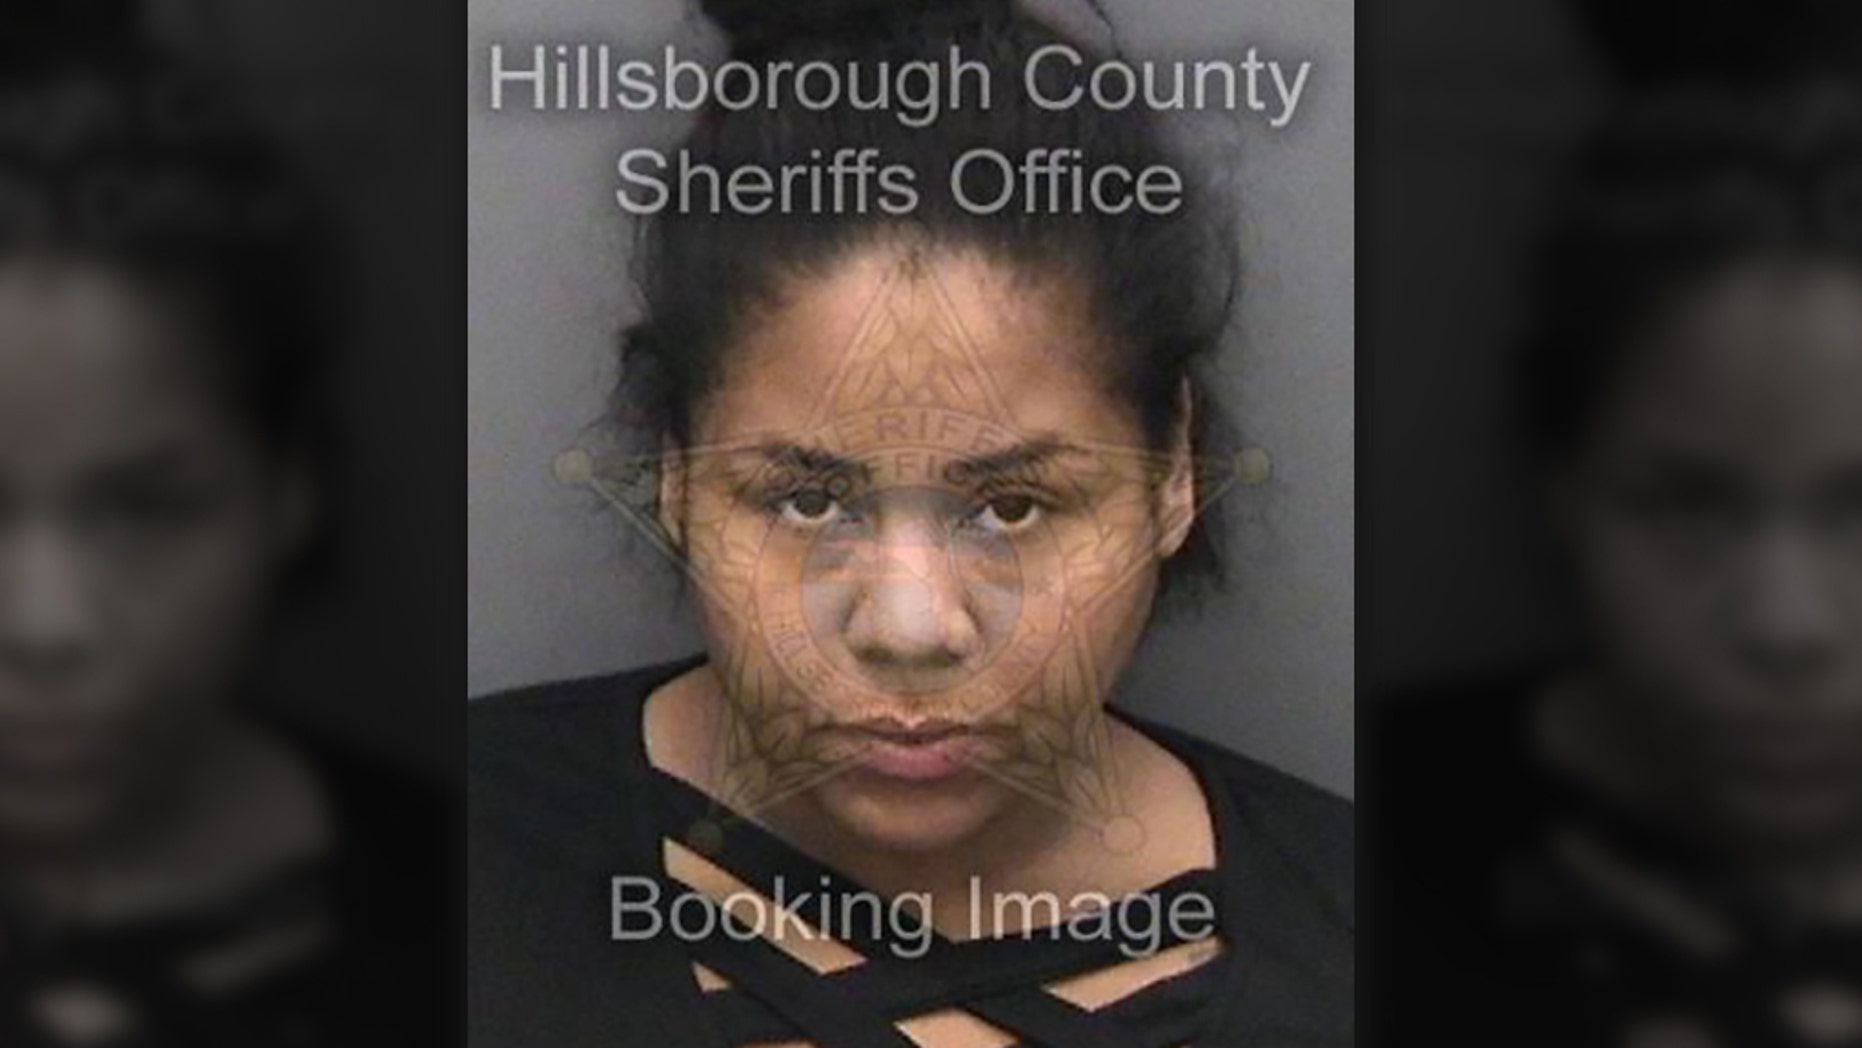 Joamary Rosario was charged with distributing heroin and fentanyl leading to a death, according to investigators. (Hillsborough County Sheriff's Office)